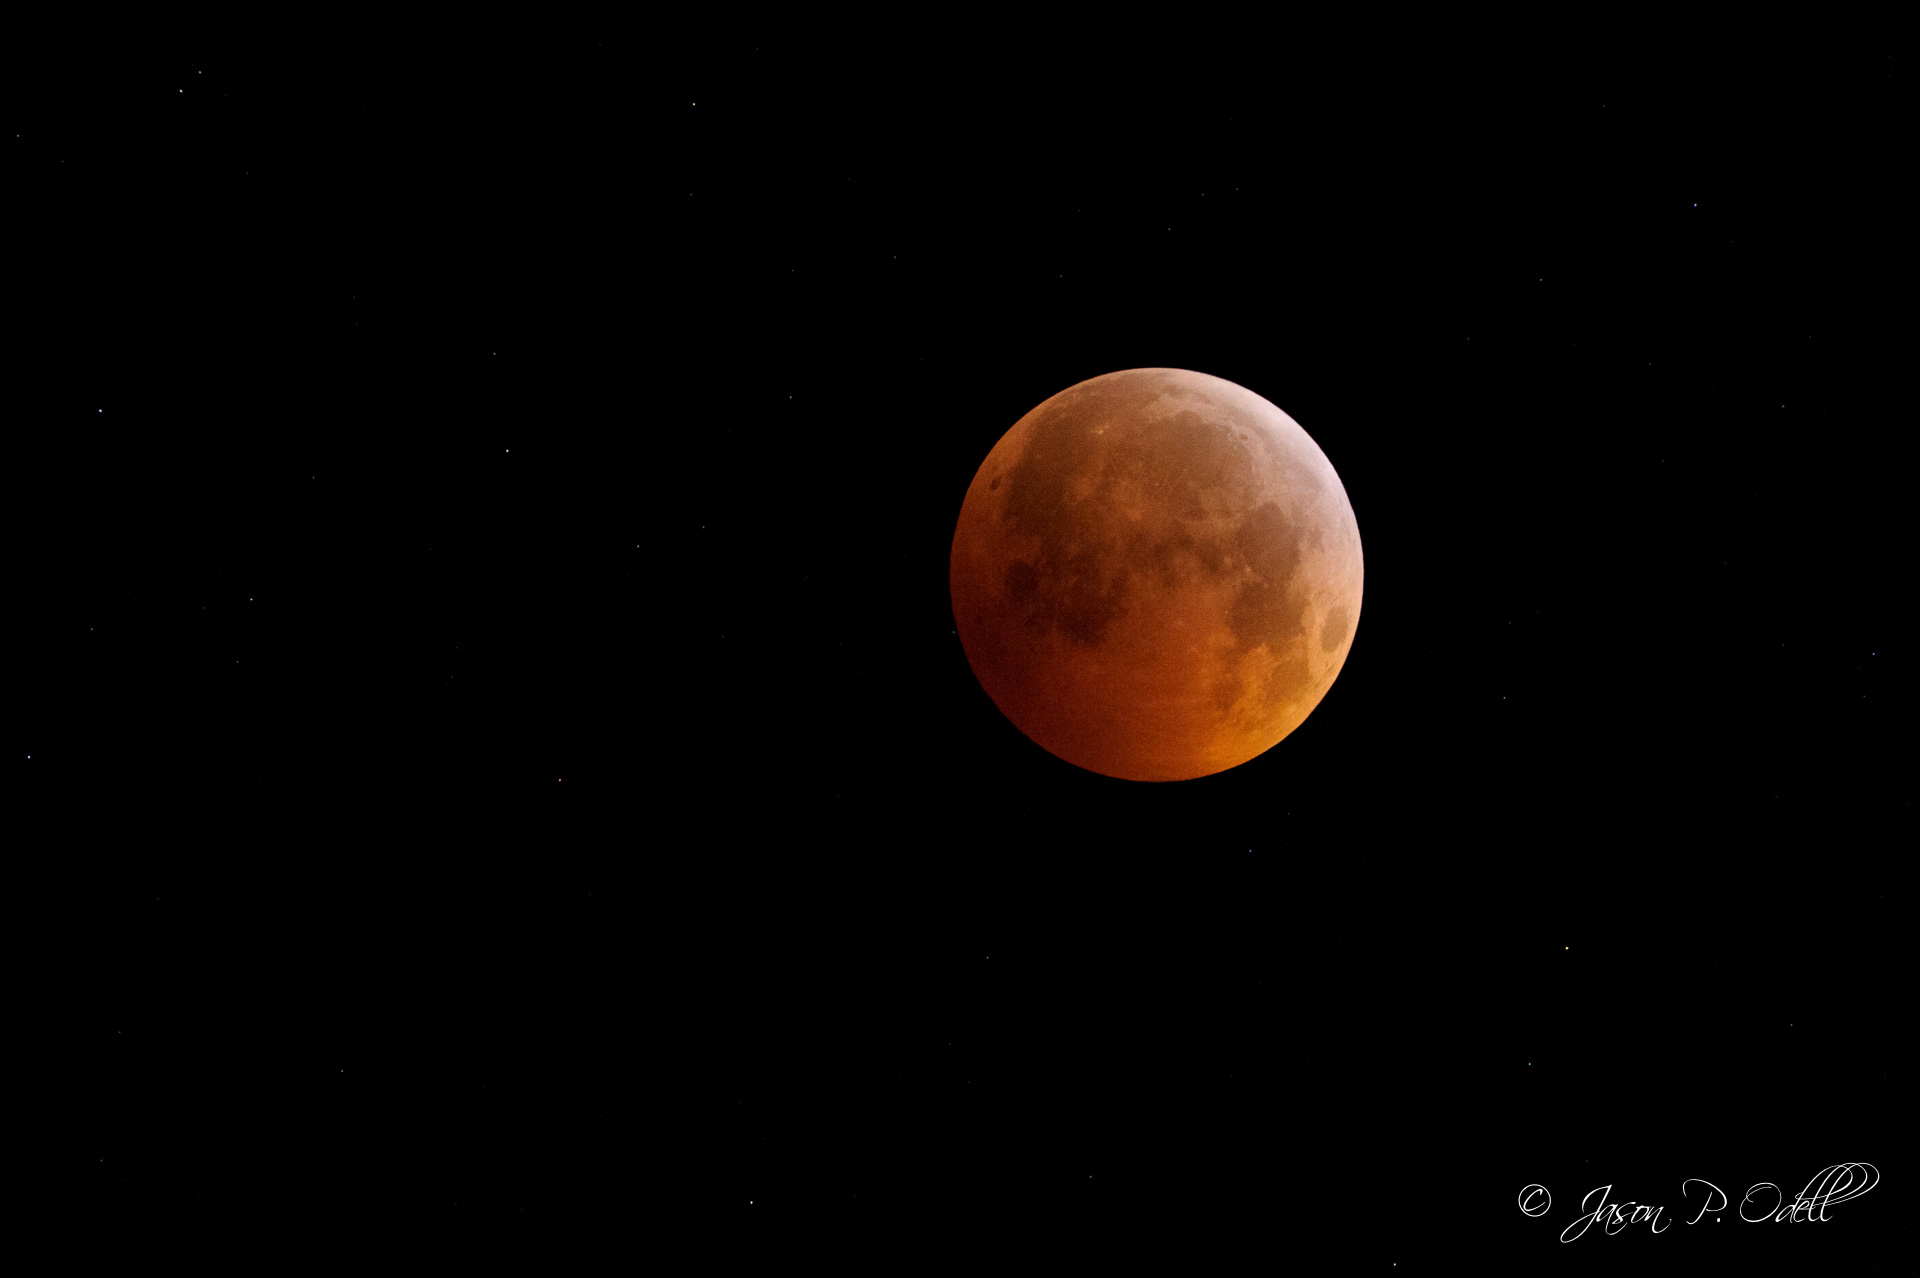 During a total lunar eclipse, the moon gets really dim. To capture this shot, I had to boost the ISO to 8000 just to get a 1/8 sec exposure!